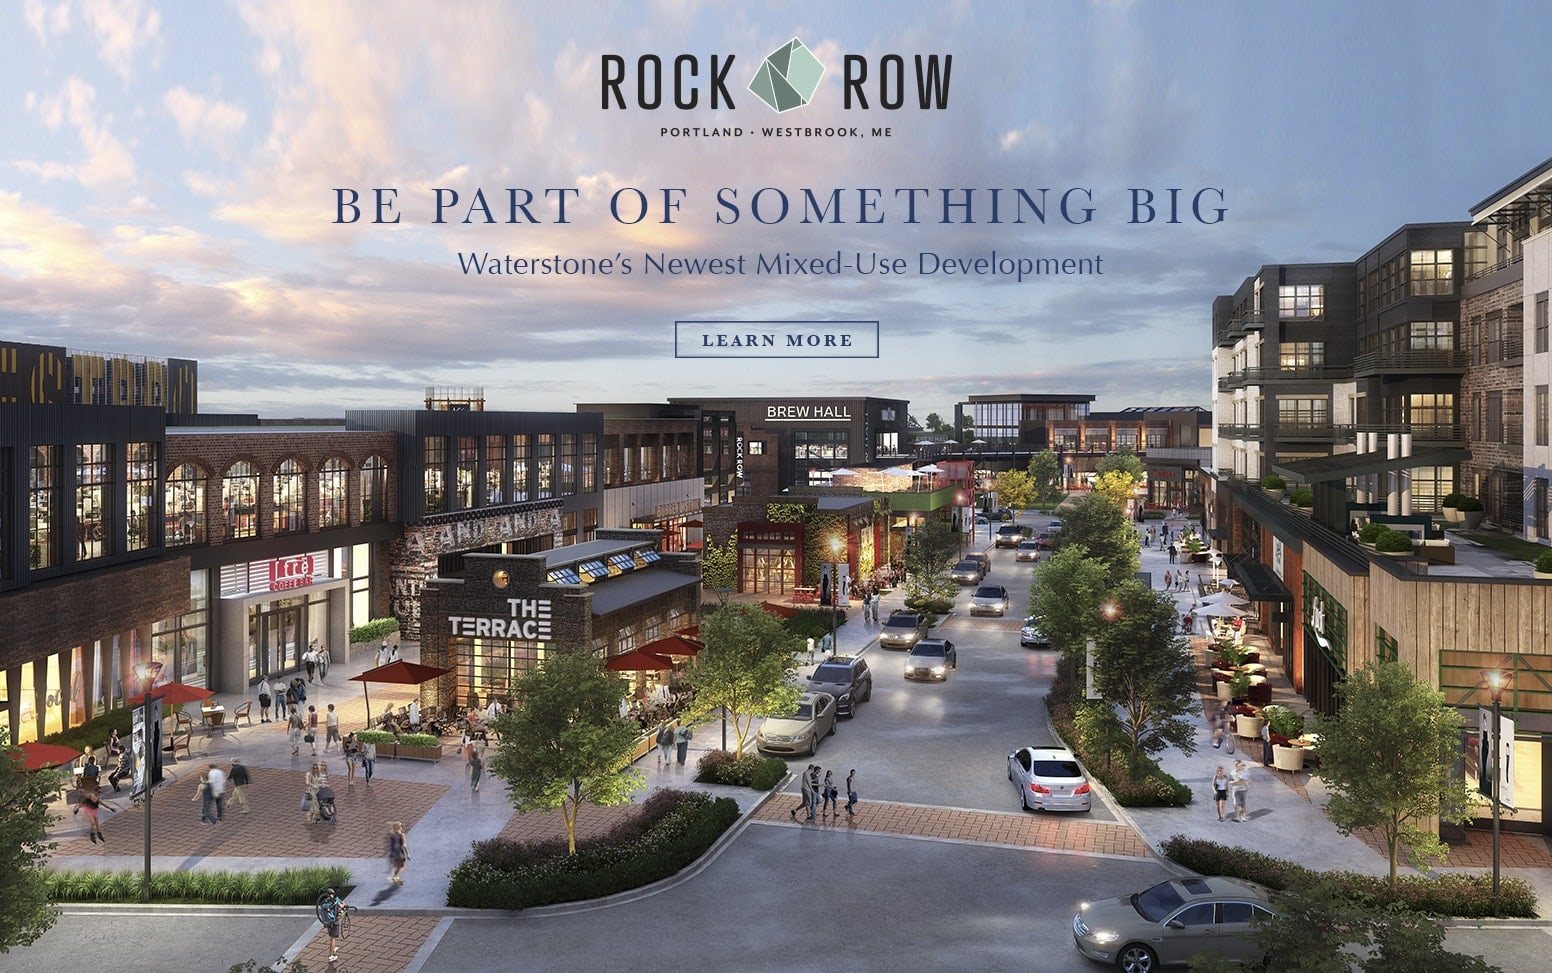 Rock Row - Be Part of Something Big